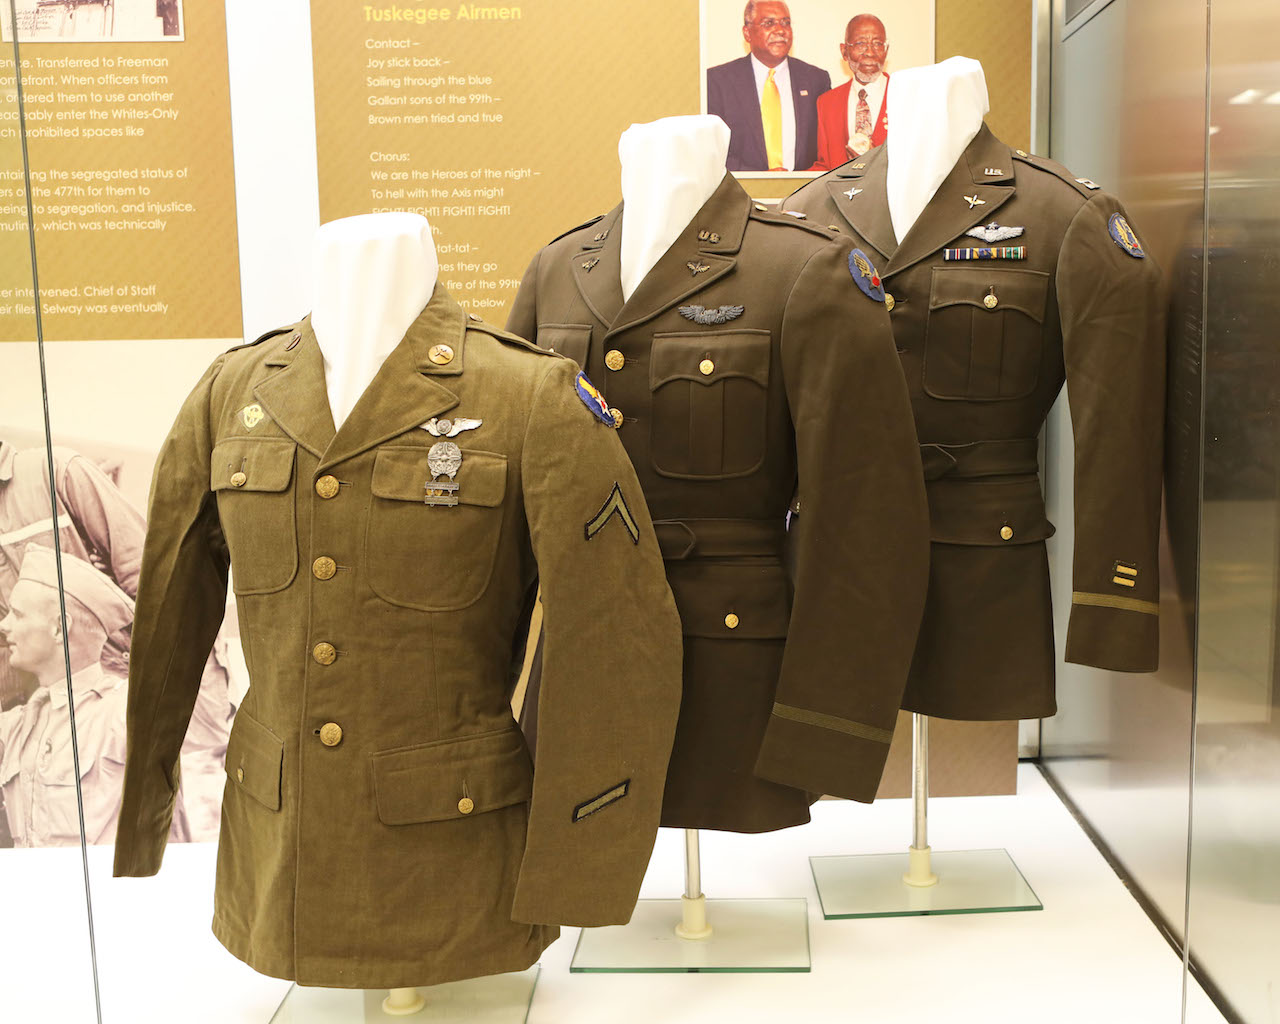 WW2 Army Officer's Dress Coat Belonging to William J. Faulkner who was killed on November 7, 1944. Faulkner was a graduate of Morehouse College in Atlanta. On Loan from the Alan B. Taylor Collection, Springfield Ohio